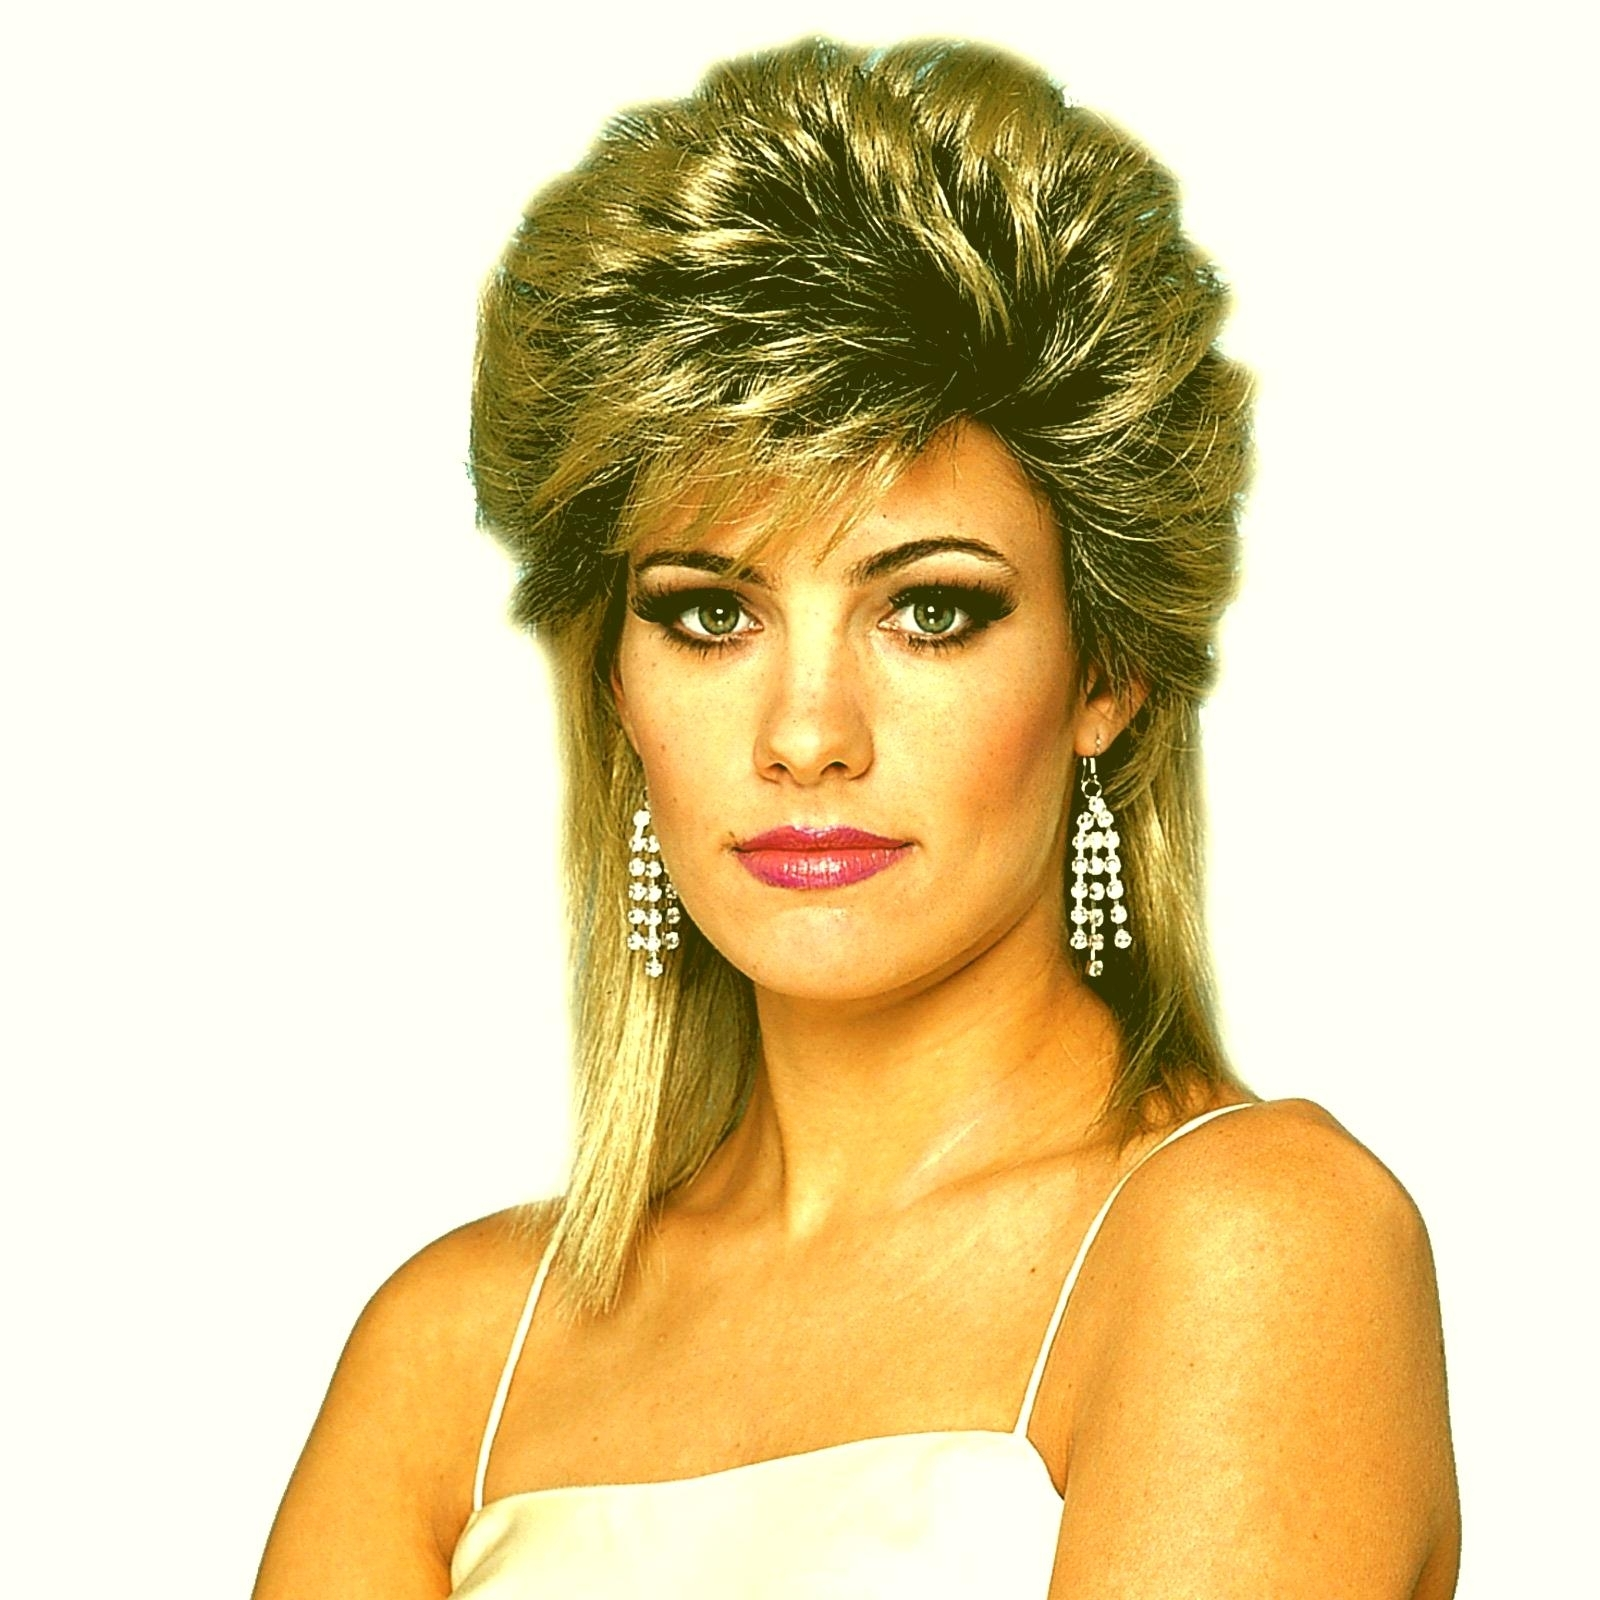 Eighties Prom Hairstyles 80S Hairstyles Medium Length Hair Greatest Intended For 80S Hair Updo Hairstyles (Gallery 5 of 15)